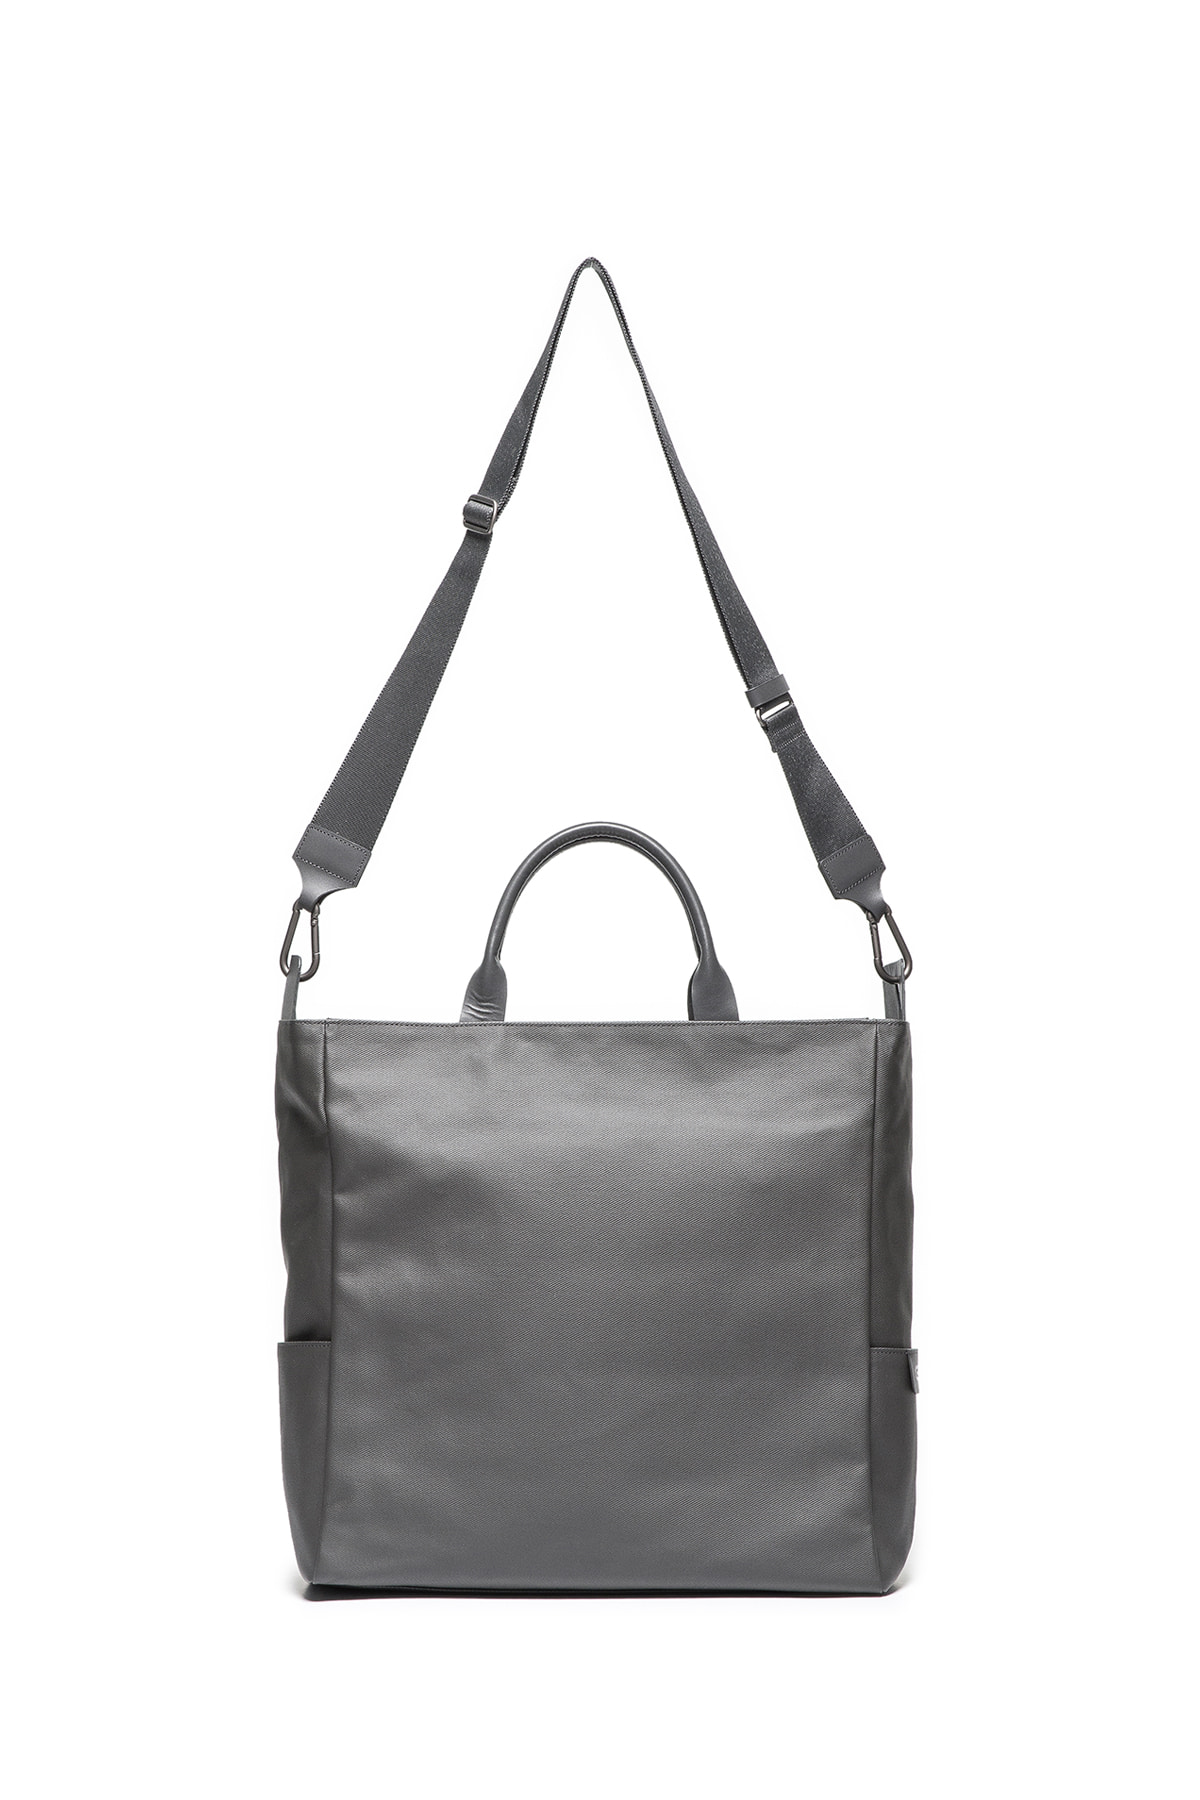 GEAR3 : CODE3-014-14 Tote Bag (Grey)